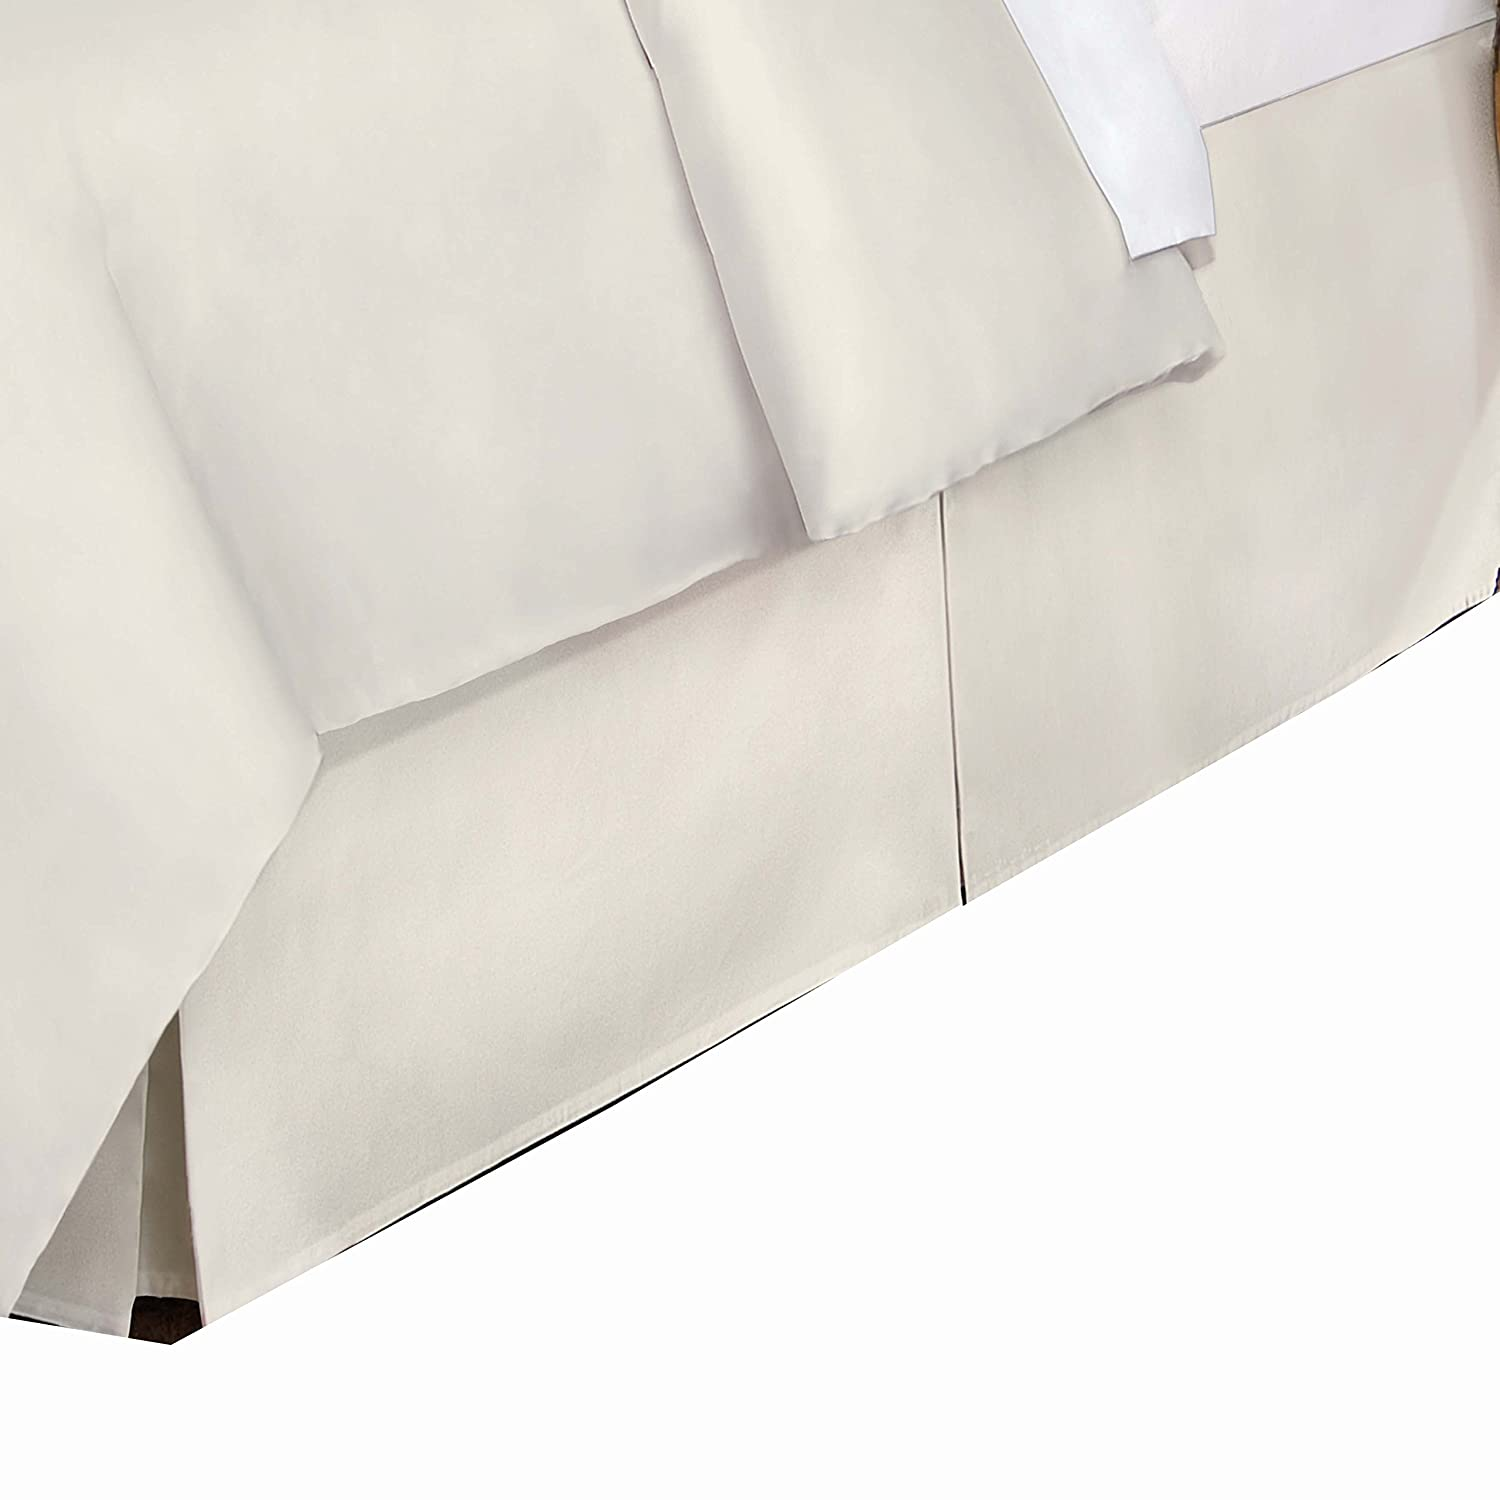 Belles & Whistles 400 Tc Bed Skirt, Queen, Ivory Levinsohn Textile LEV27618IVOR03